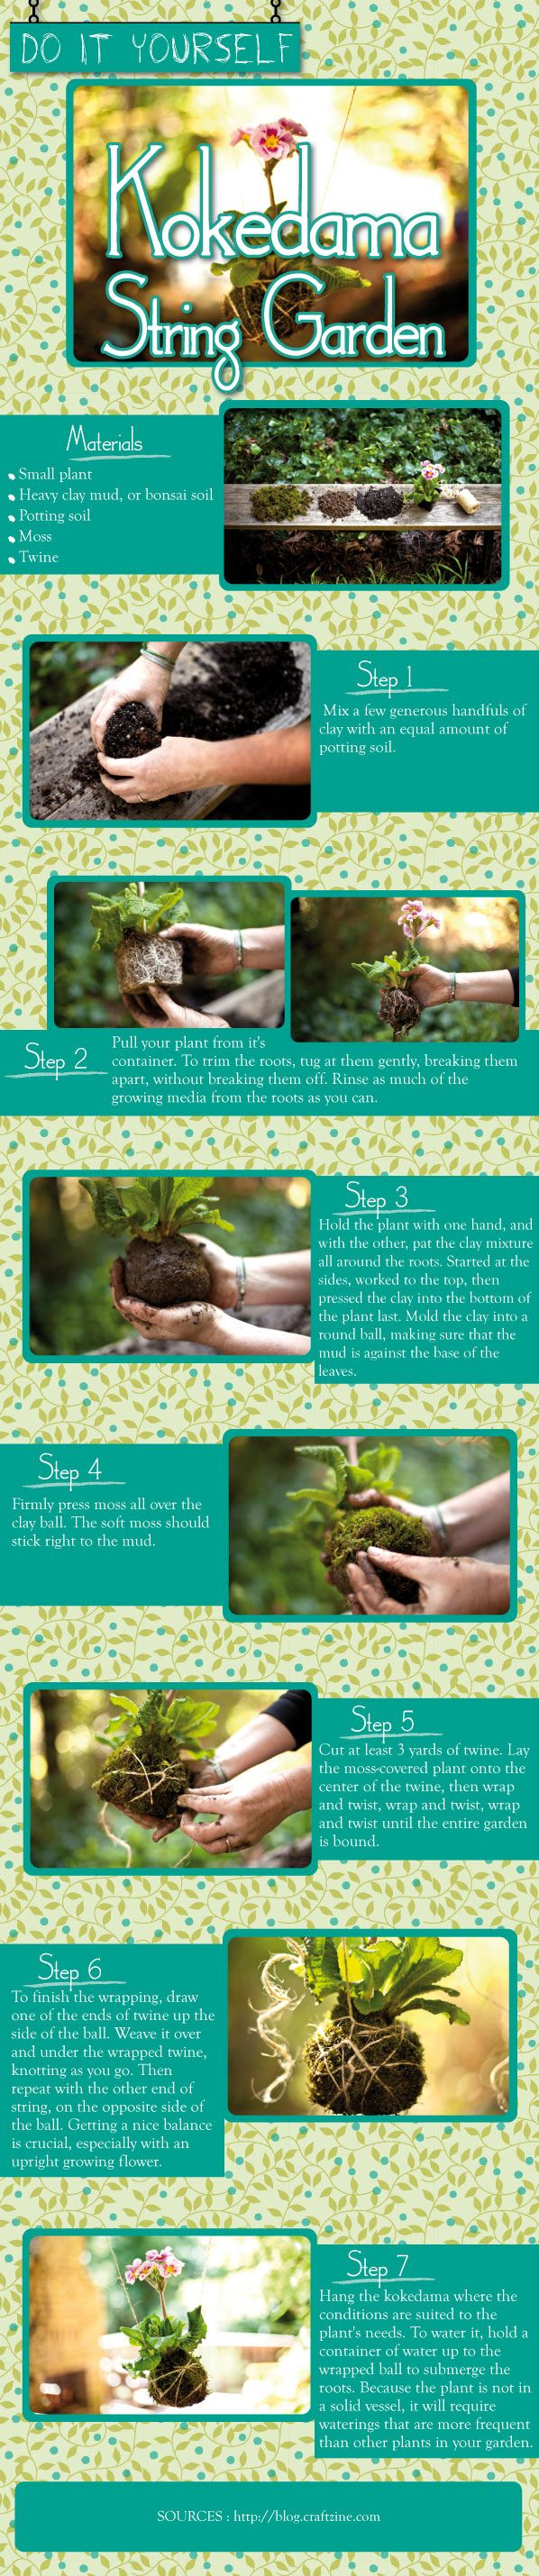 Beautiful, fun and creative – everything DIY project should be and this instructographic on how to create your own Kokedama Hanging Plant with String. All you need is a small plant and some twine and a little bit of work and this plant and flower can be hanging from your porch in no time.